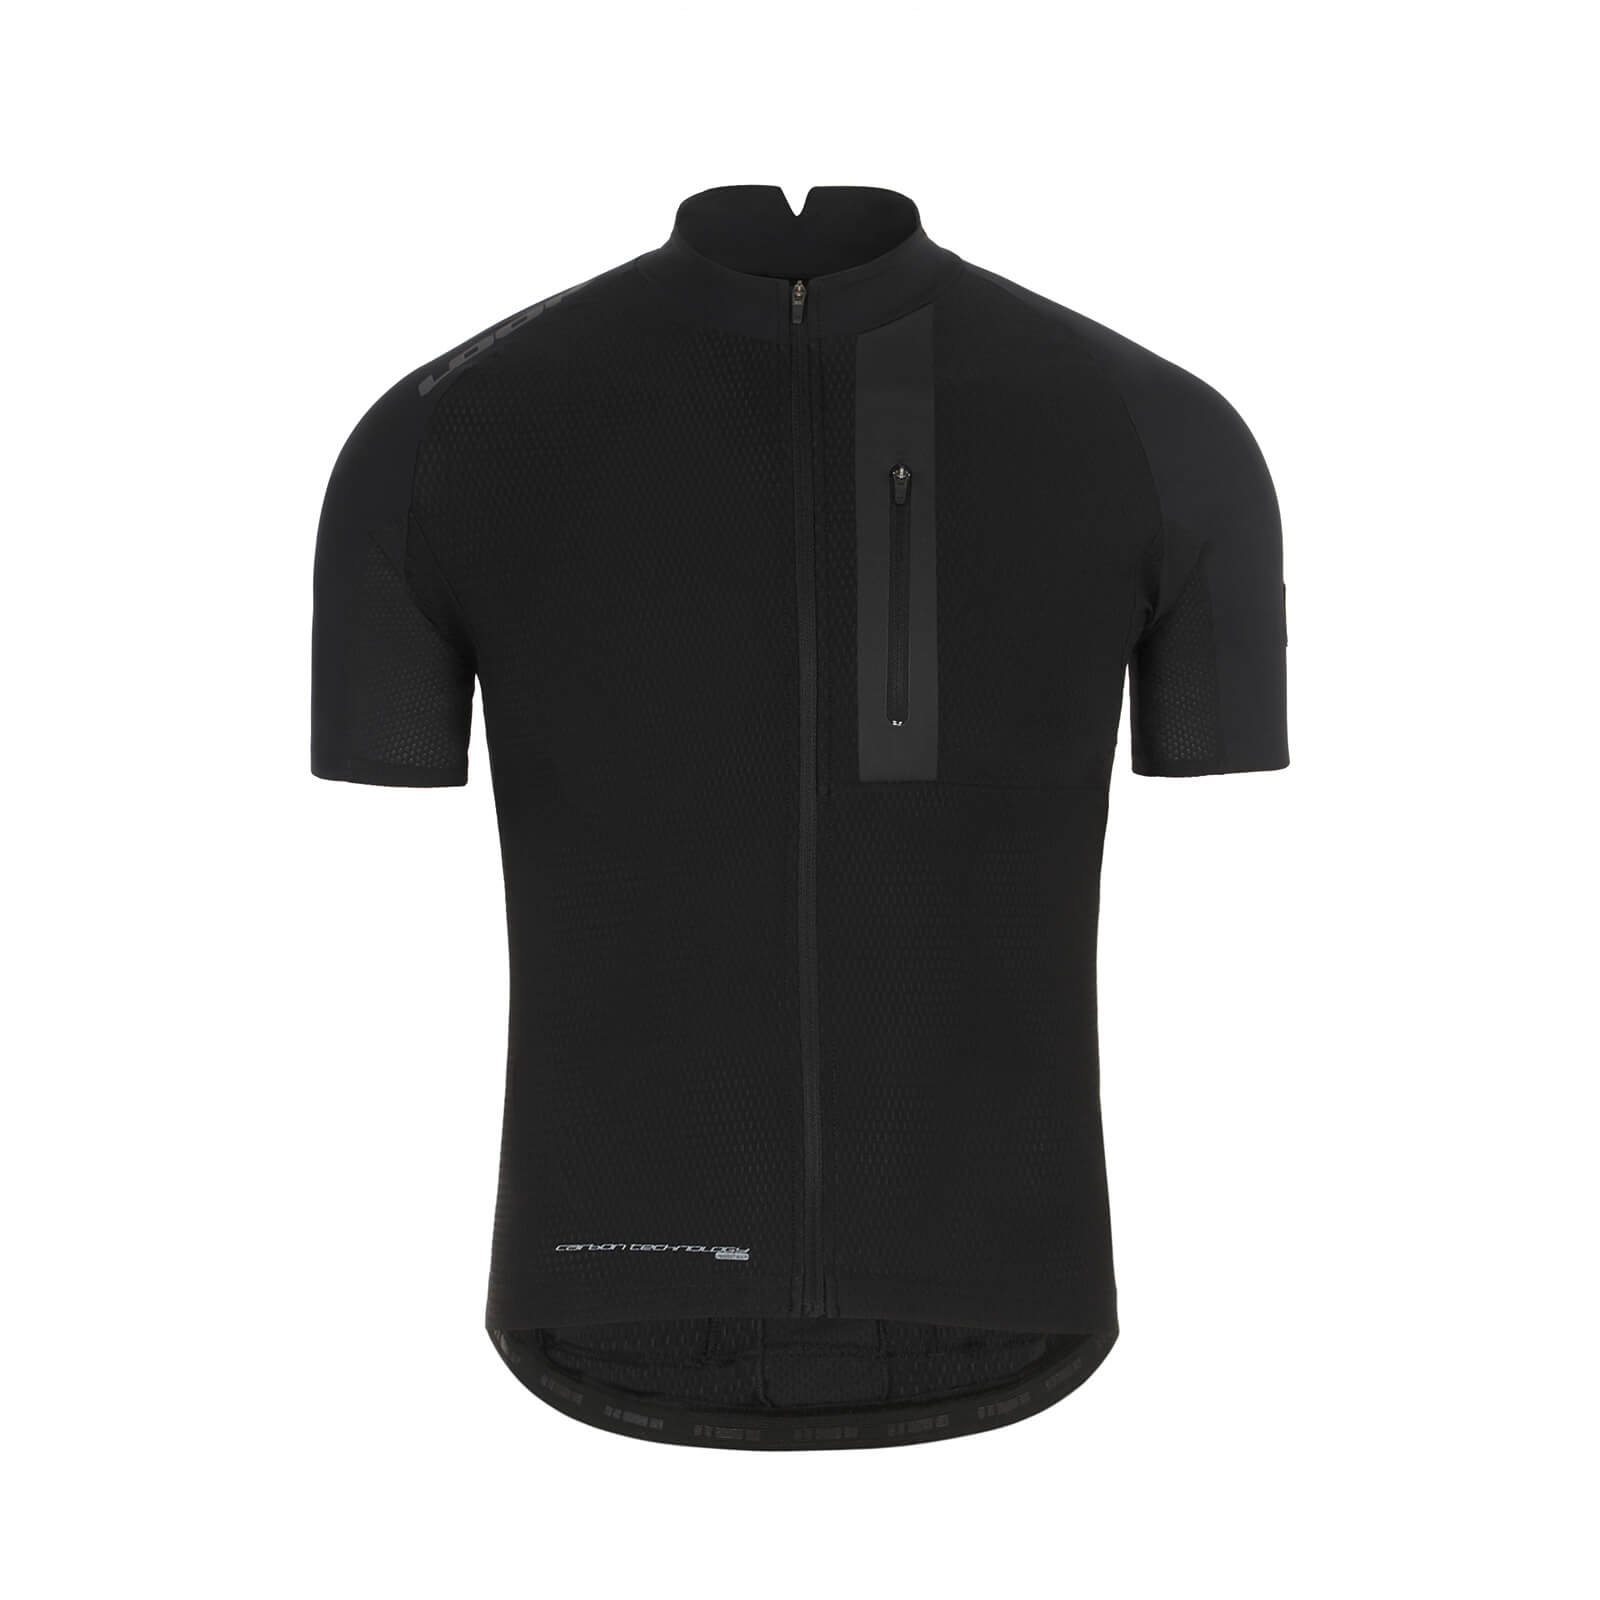 Look Excellence Jersey - Black